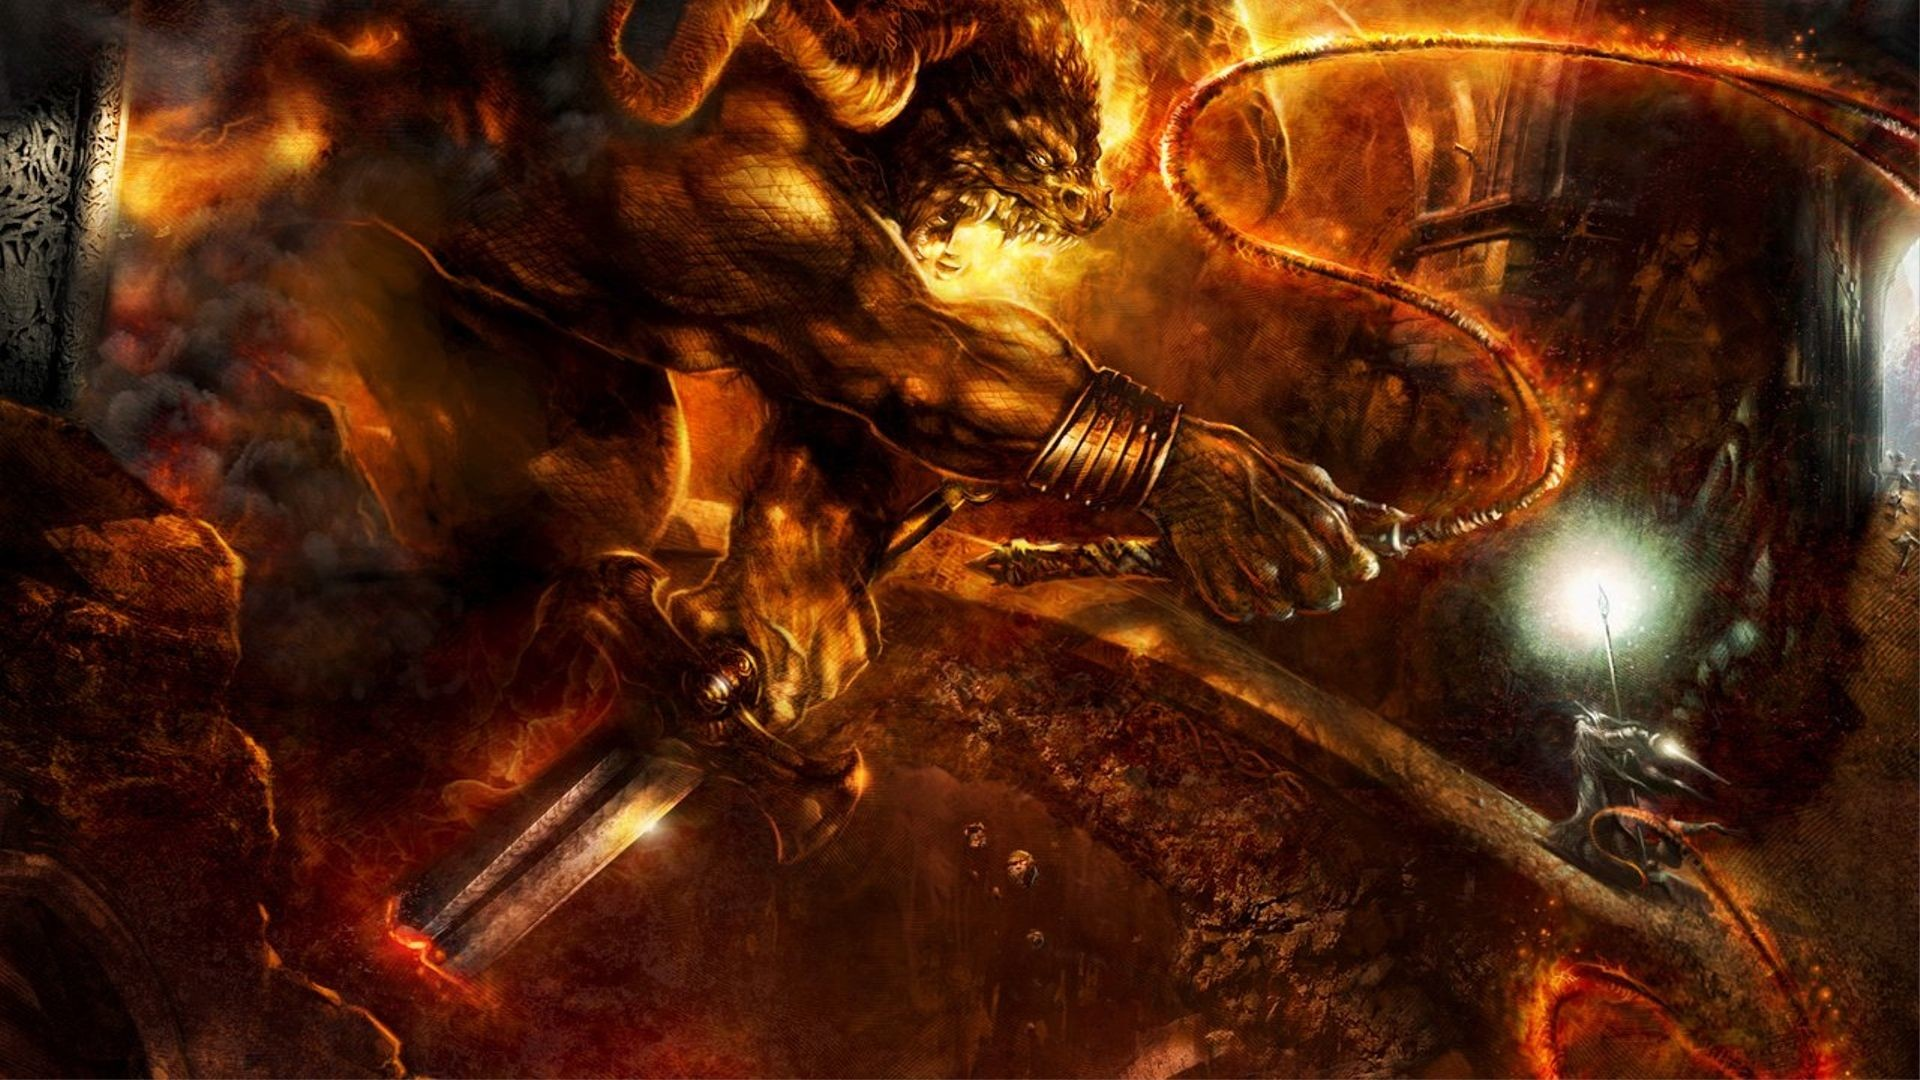 Res: 1920x1080, Download Demon Balrog Live Wallpaper for Android - Appszoom